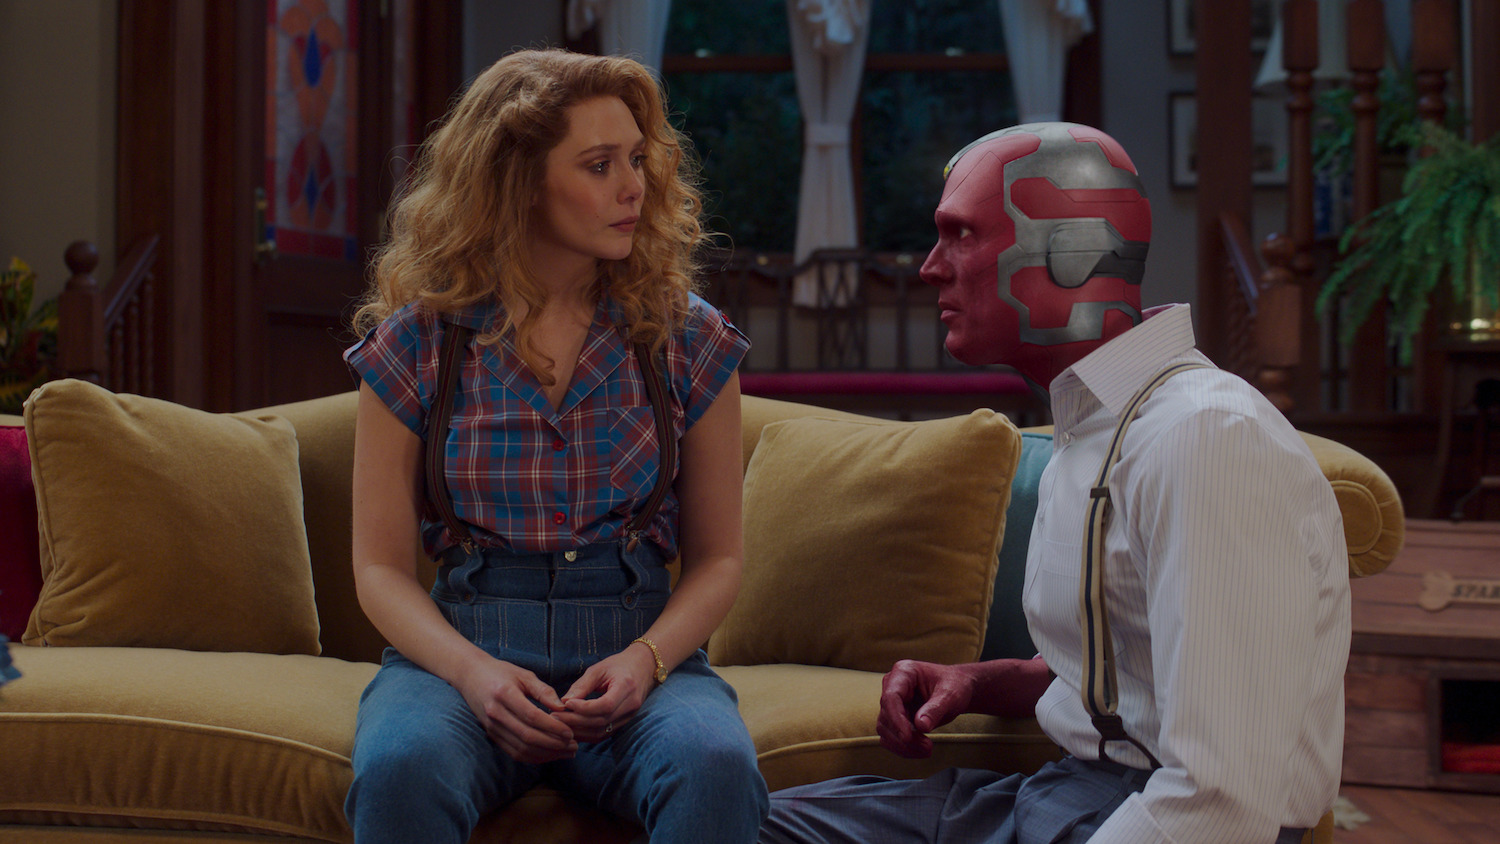 WandaVision Takes Us Through 5+ Decades Of Grief, Pain And Sitcoms (Season 1 Review)